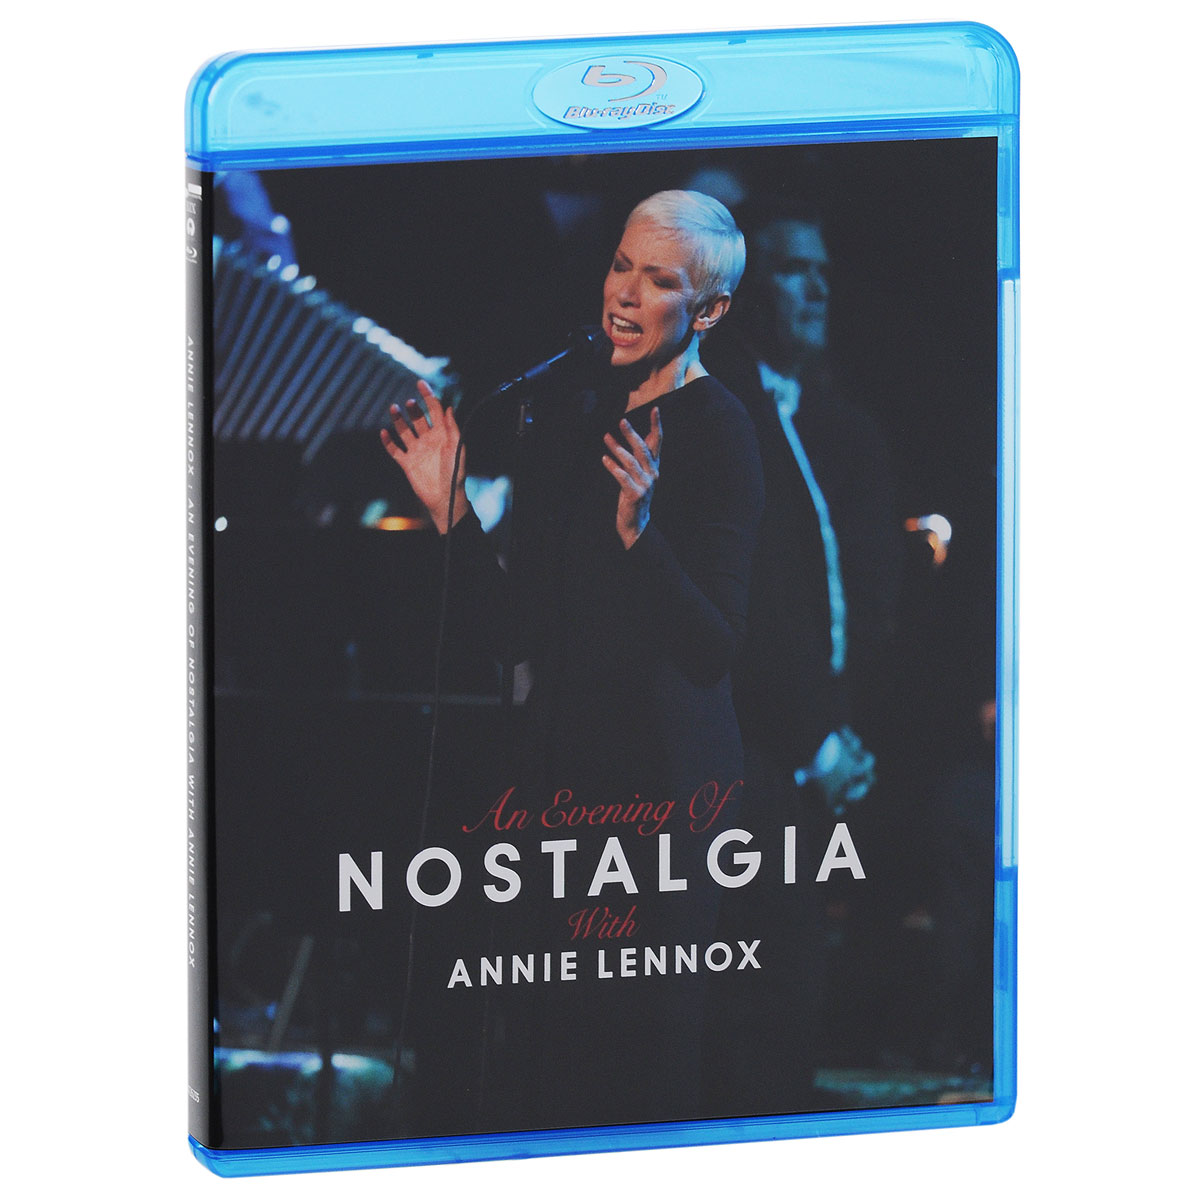 Annie Lennox. An Evening Of Nostalgia With Annie Lennox (Blu-ray)